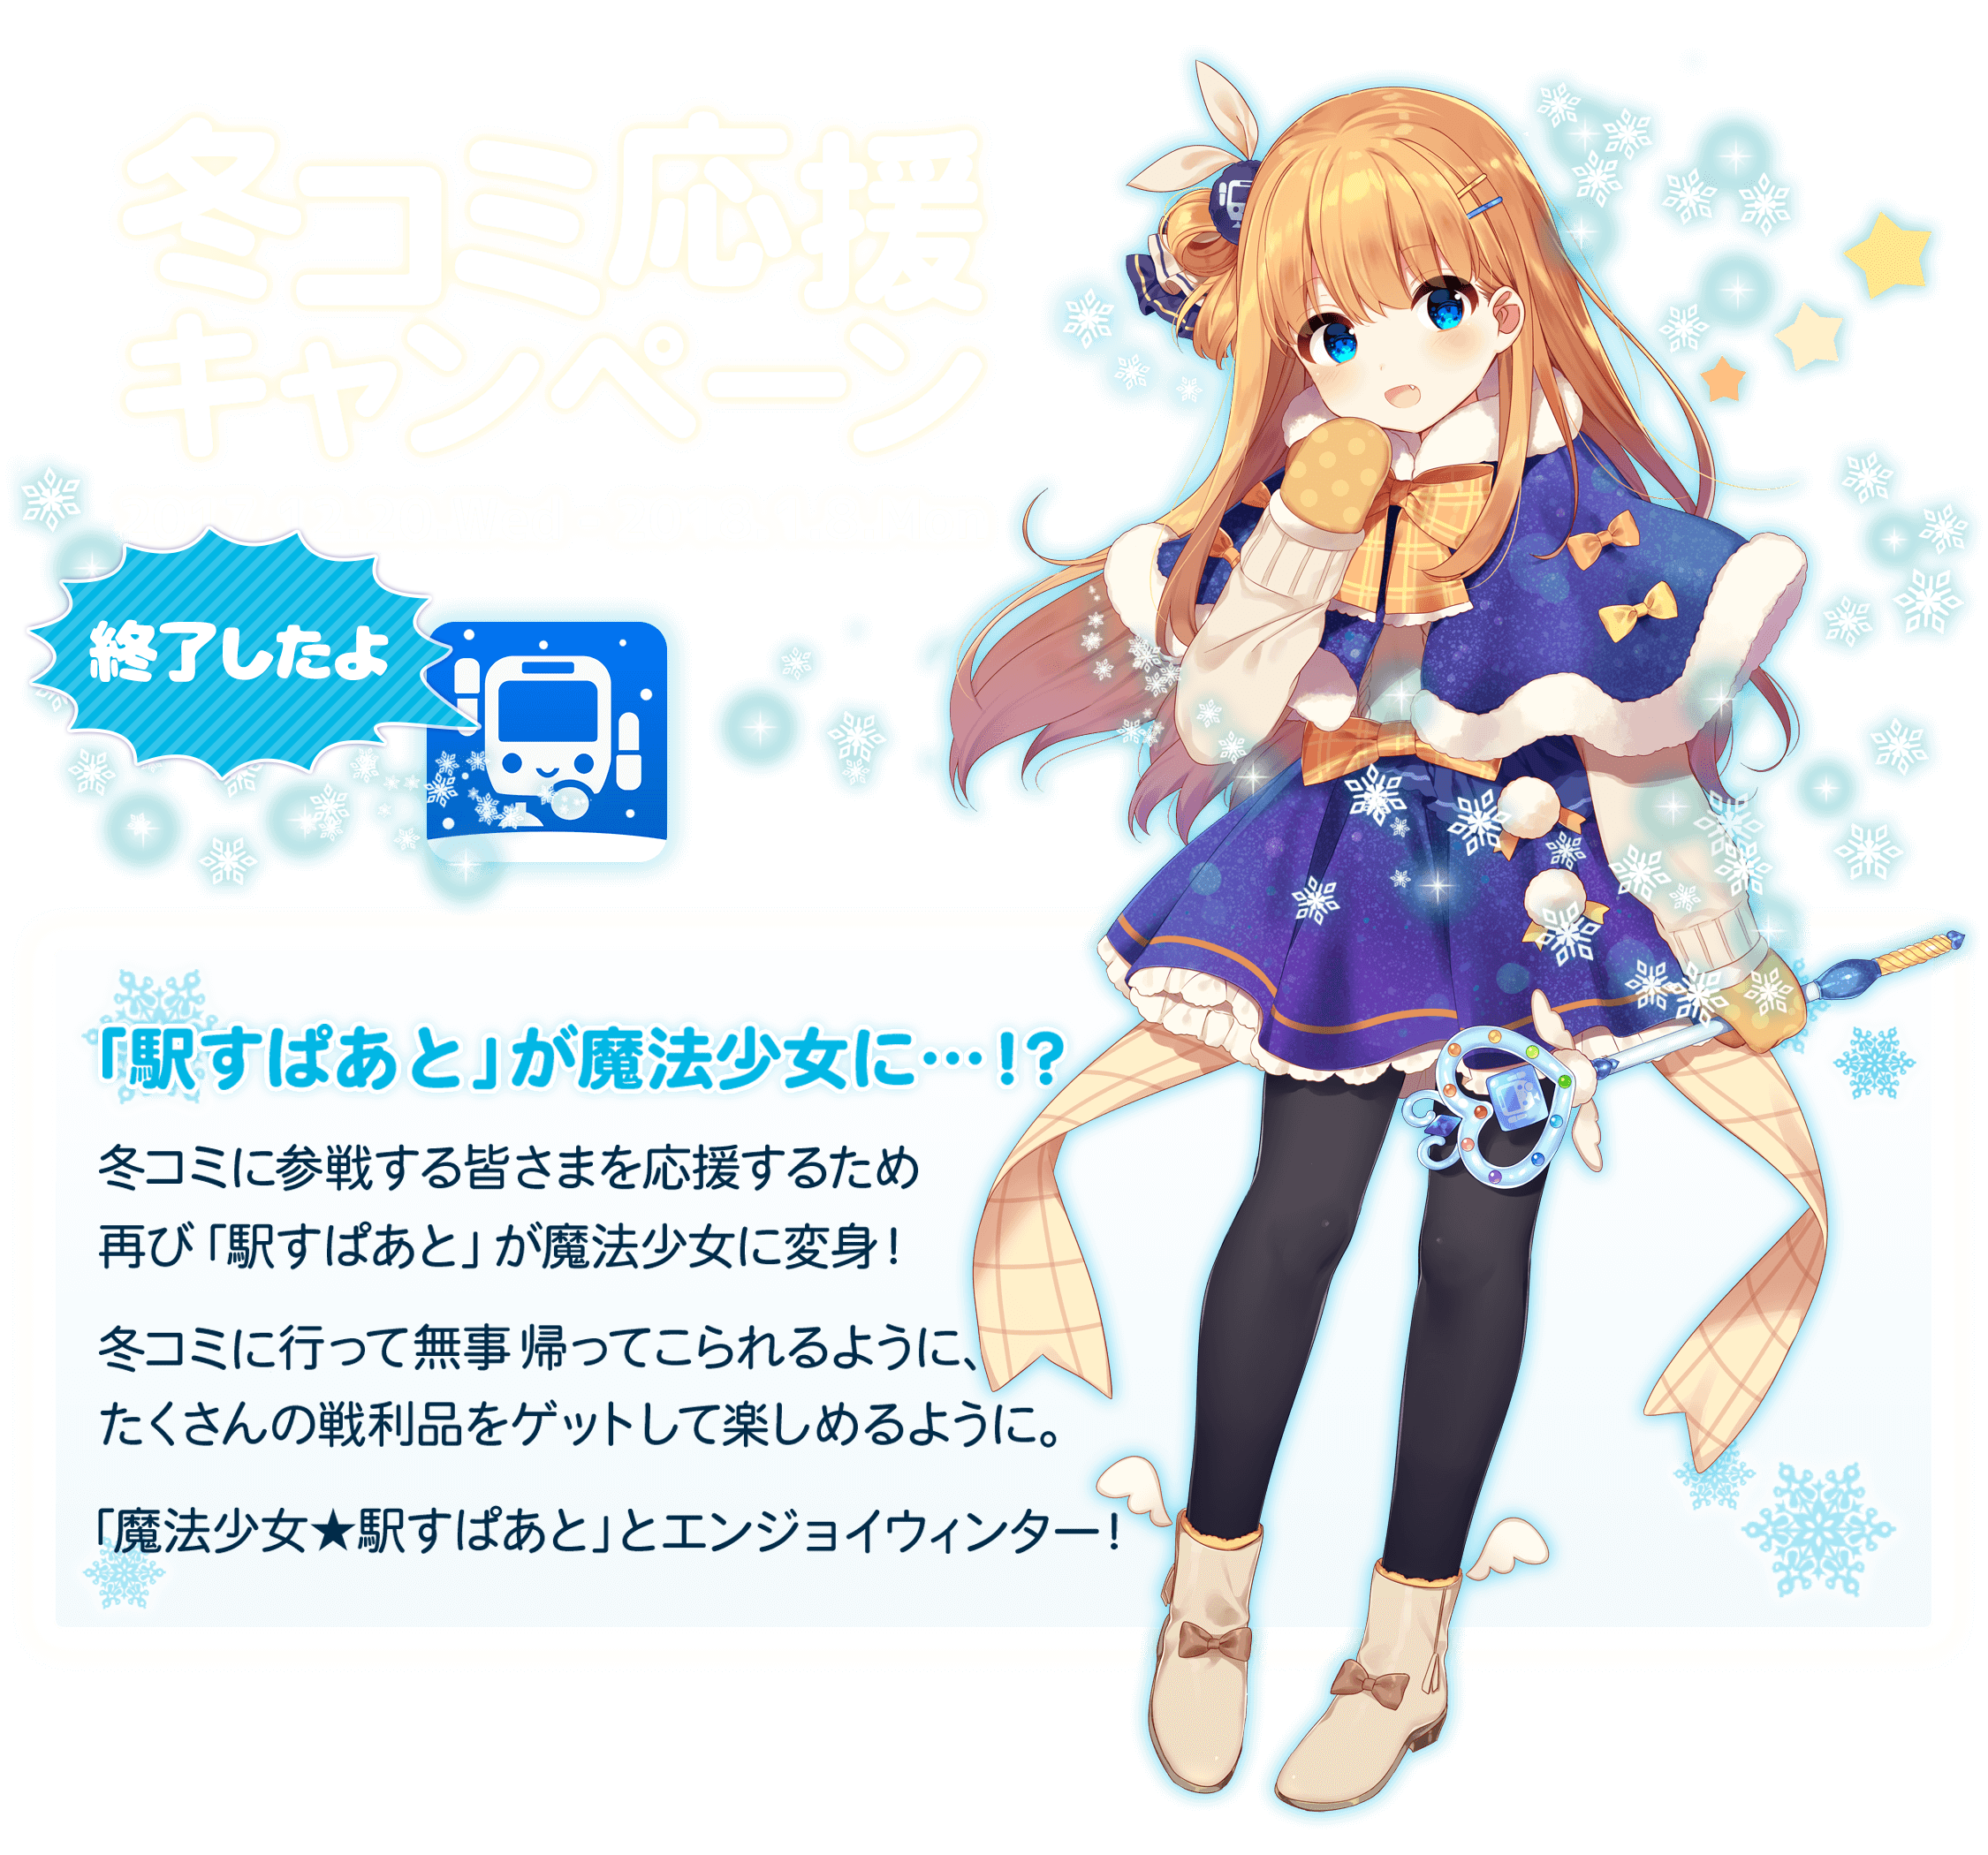 https://ad-info.val.jp/campaign/c93_yell/images/image_mainvisual_closed.png